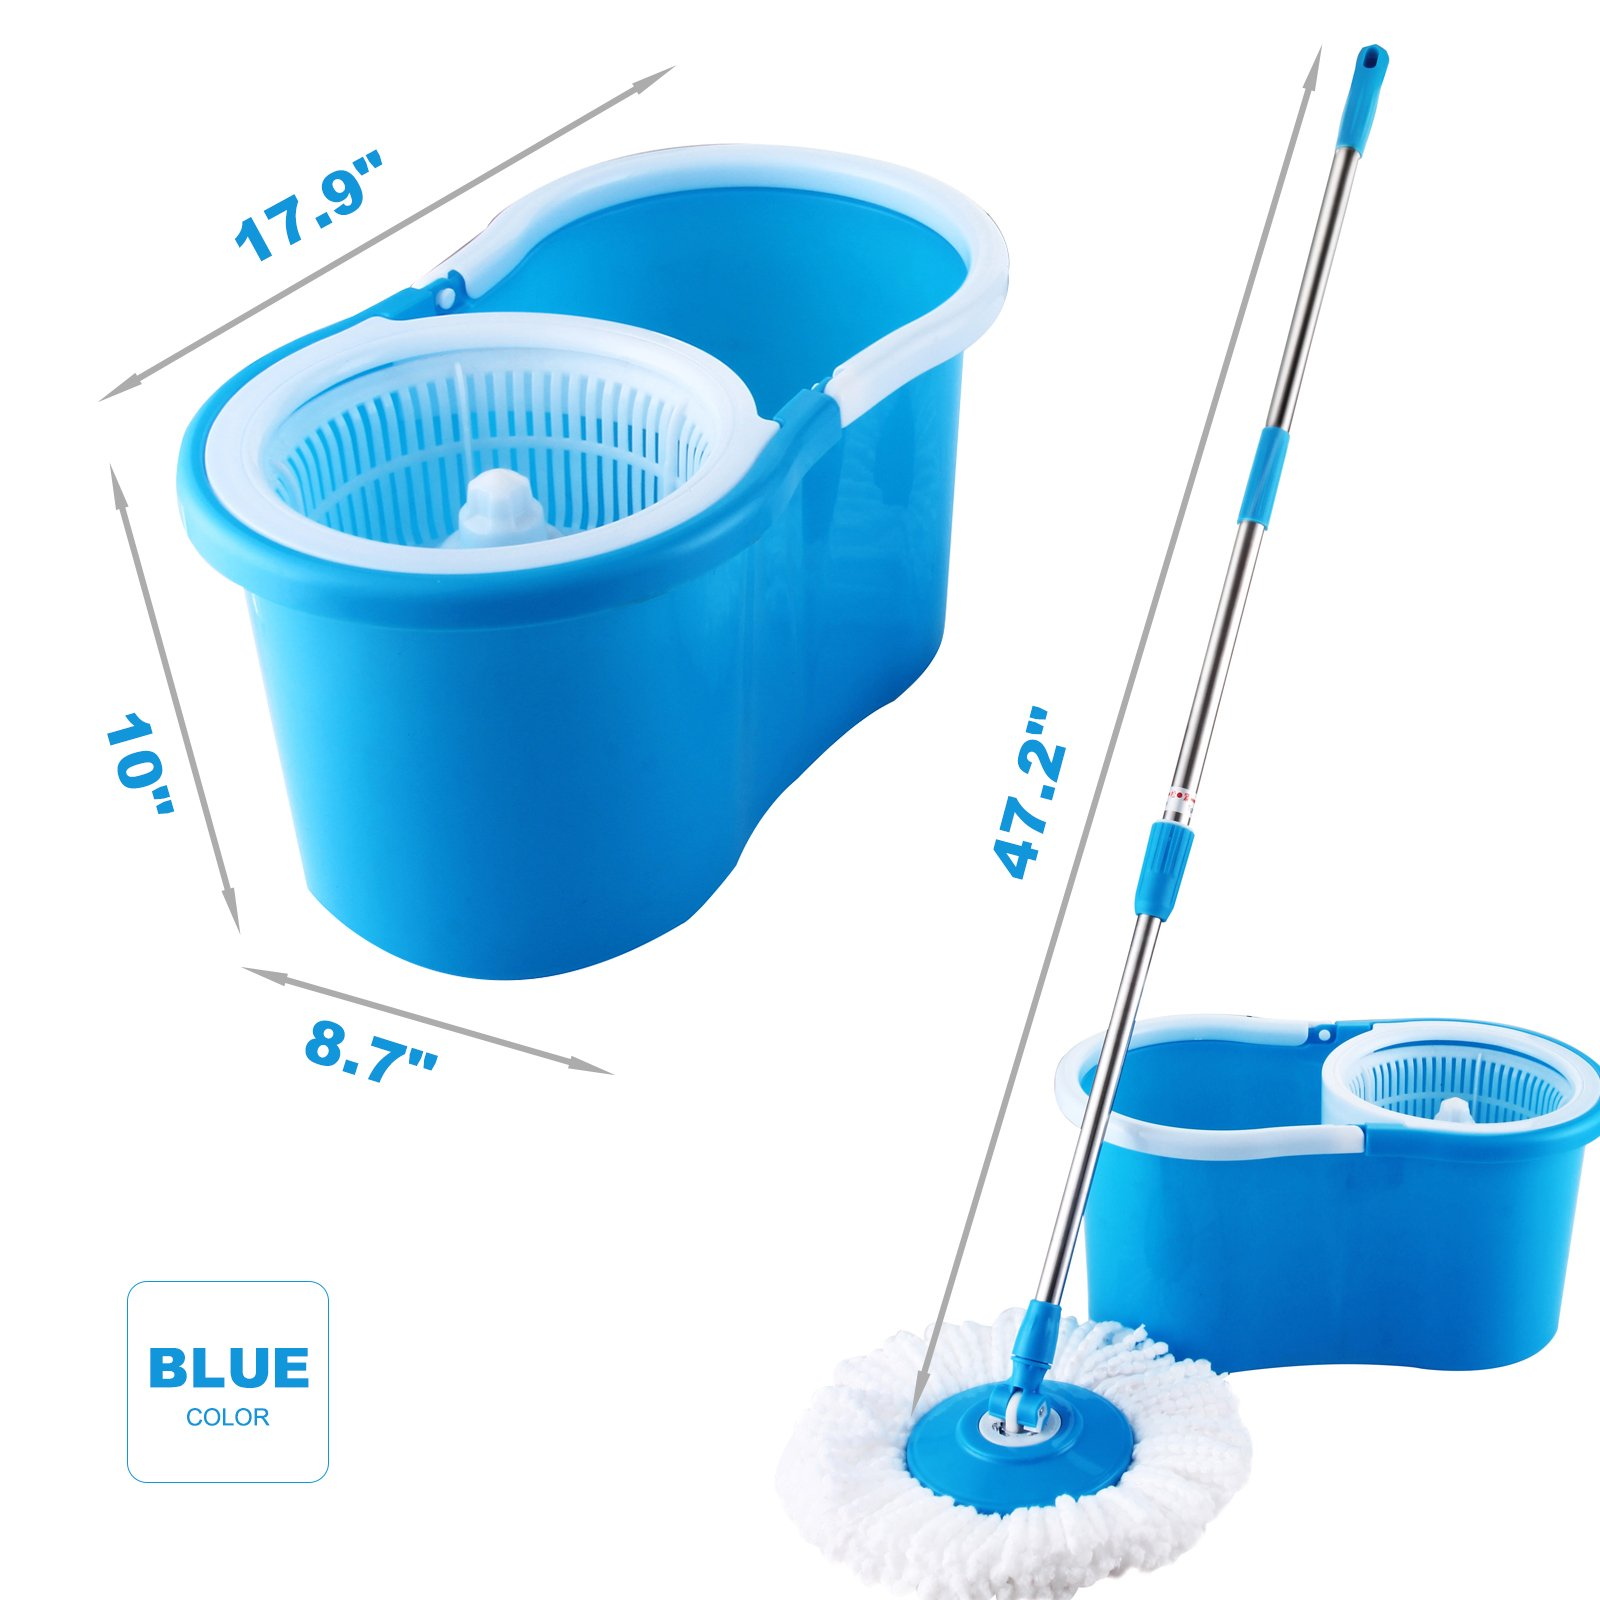 Mecor Spin Mop Bucket System-Microfiber Spinning Mop W/Bucket, 2 Microfiber Mop Heads-Rotating 360 Degree, Adjustable Handle-For Home Cleaning, Bathroom Equipment-Blue